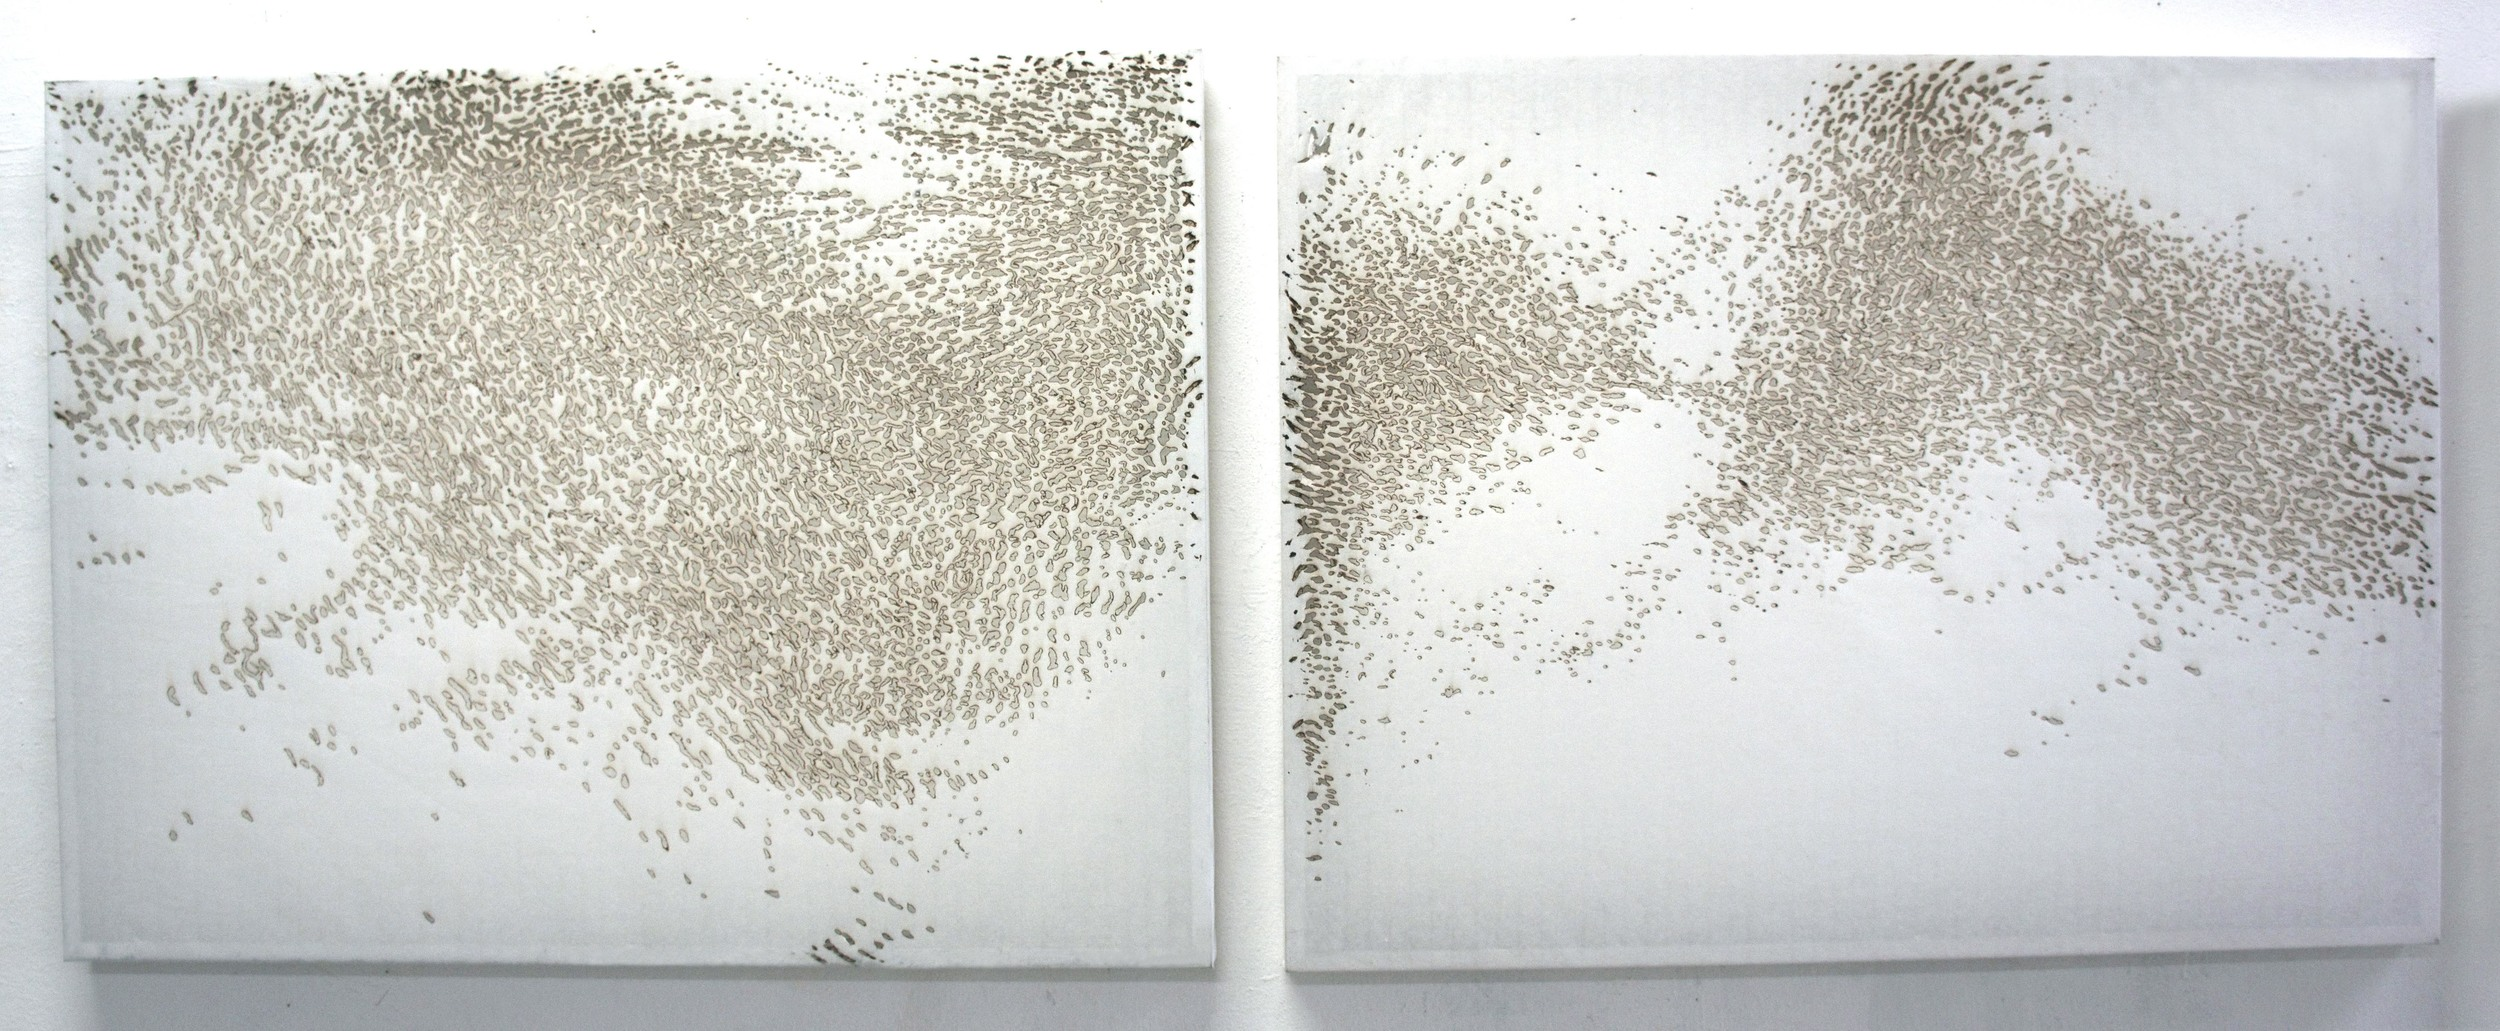 'Ebb II, III', two layers of incense burnt rice paper, 85 x 65 cm